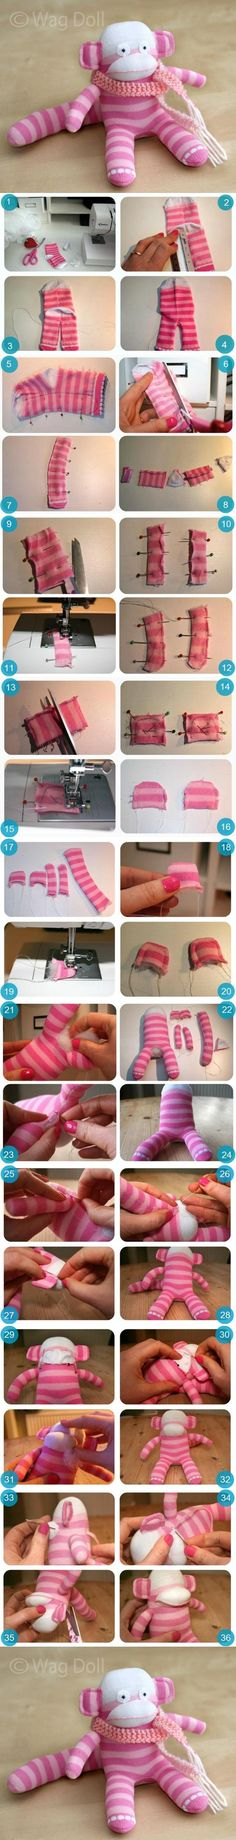 DIY Sock Monkey DIY Projects | UsefulDIY.com